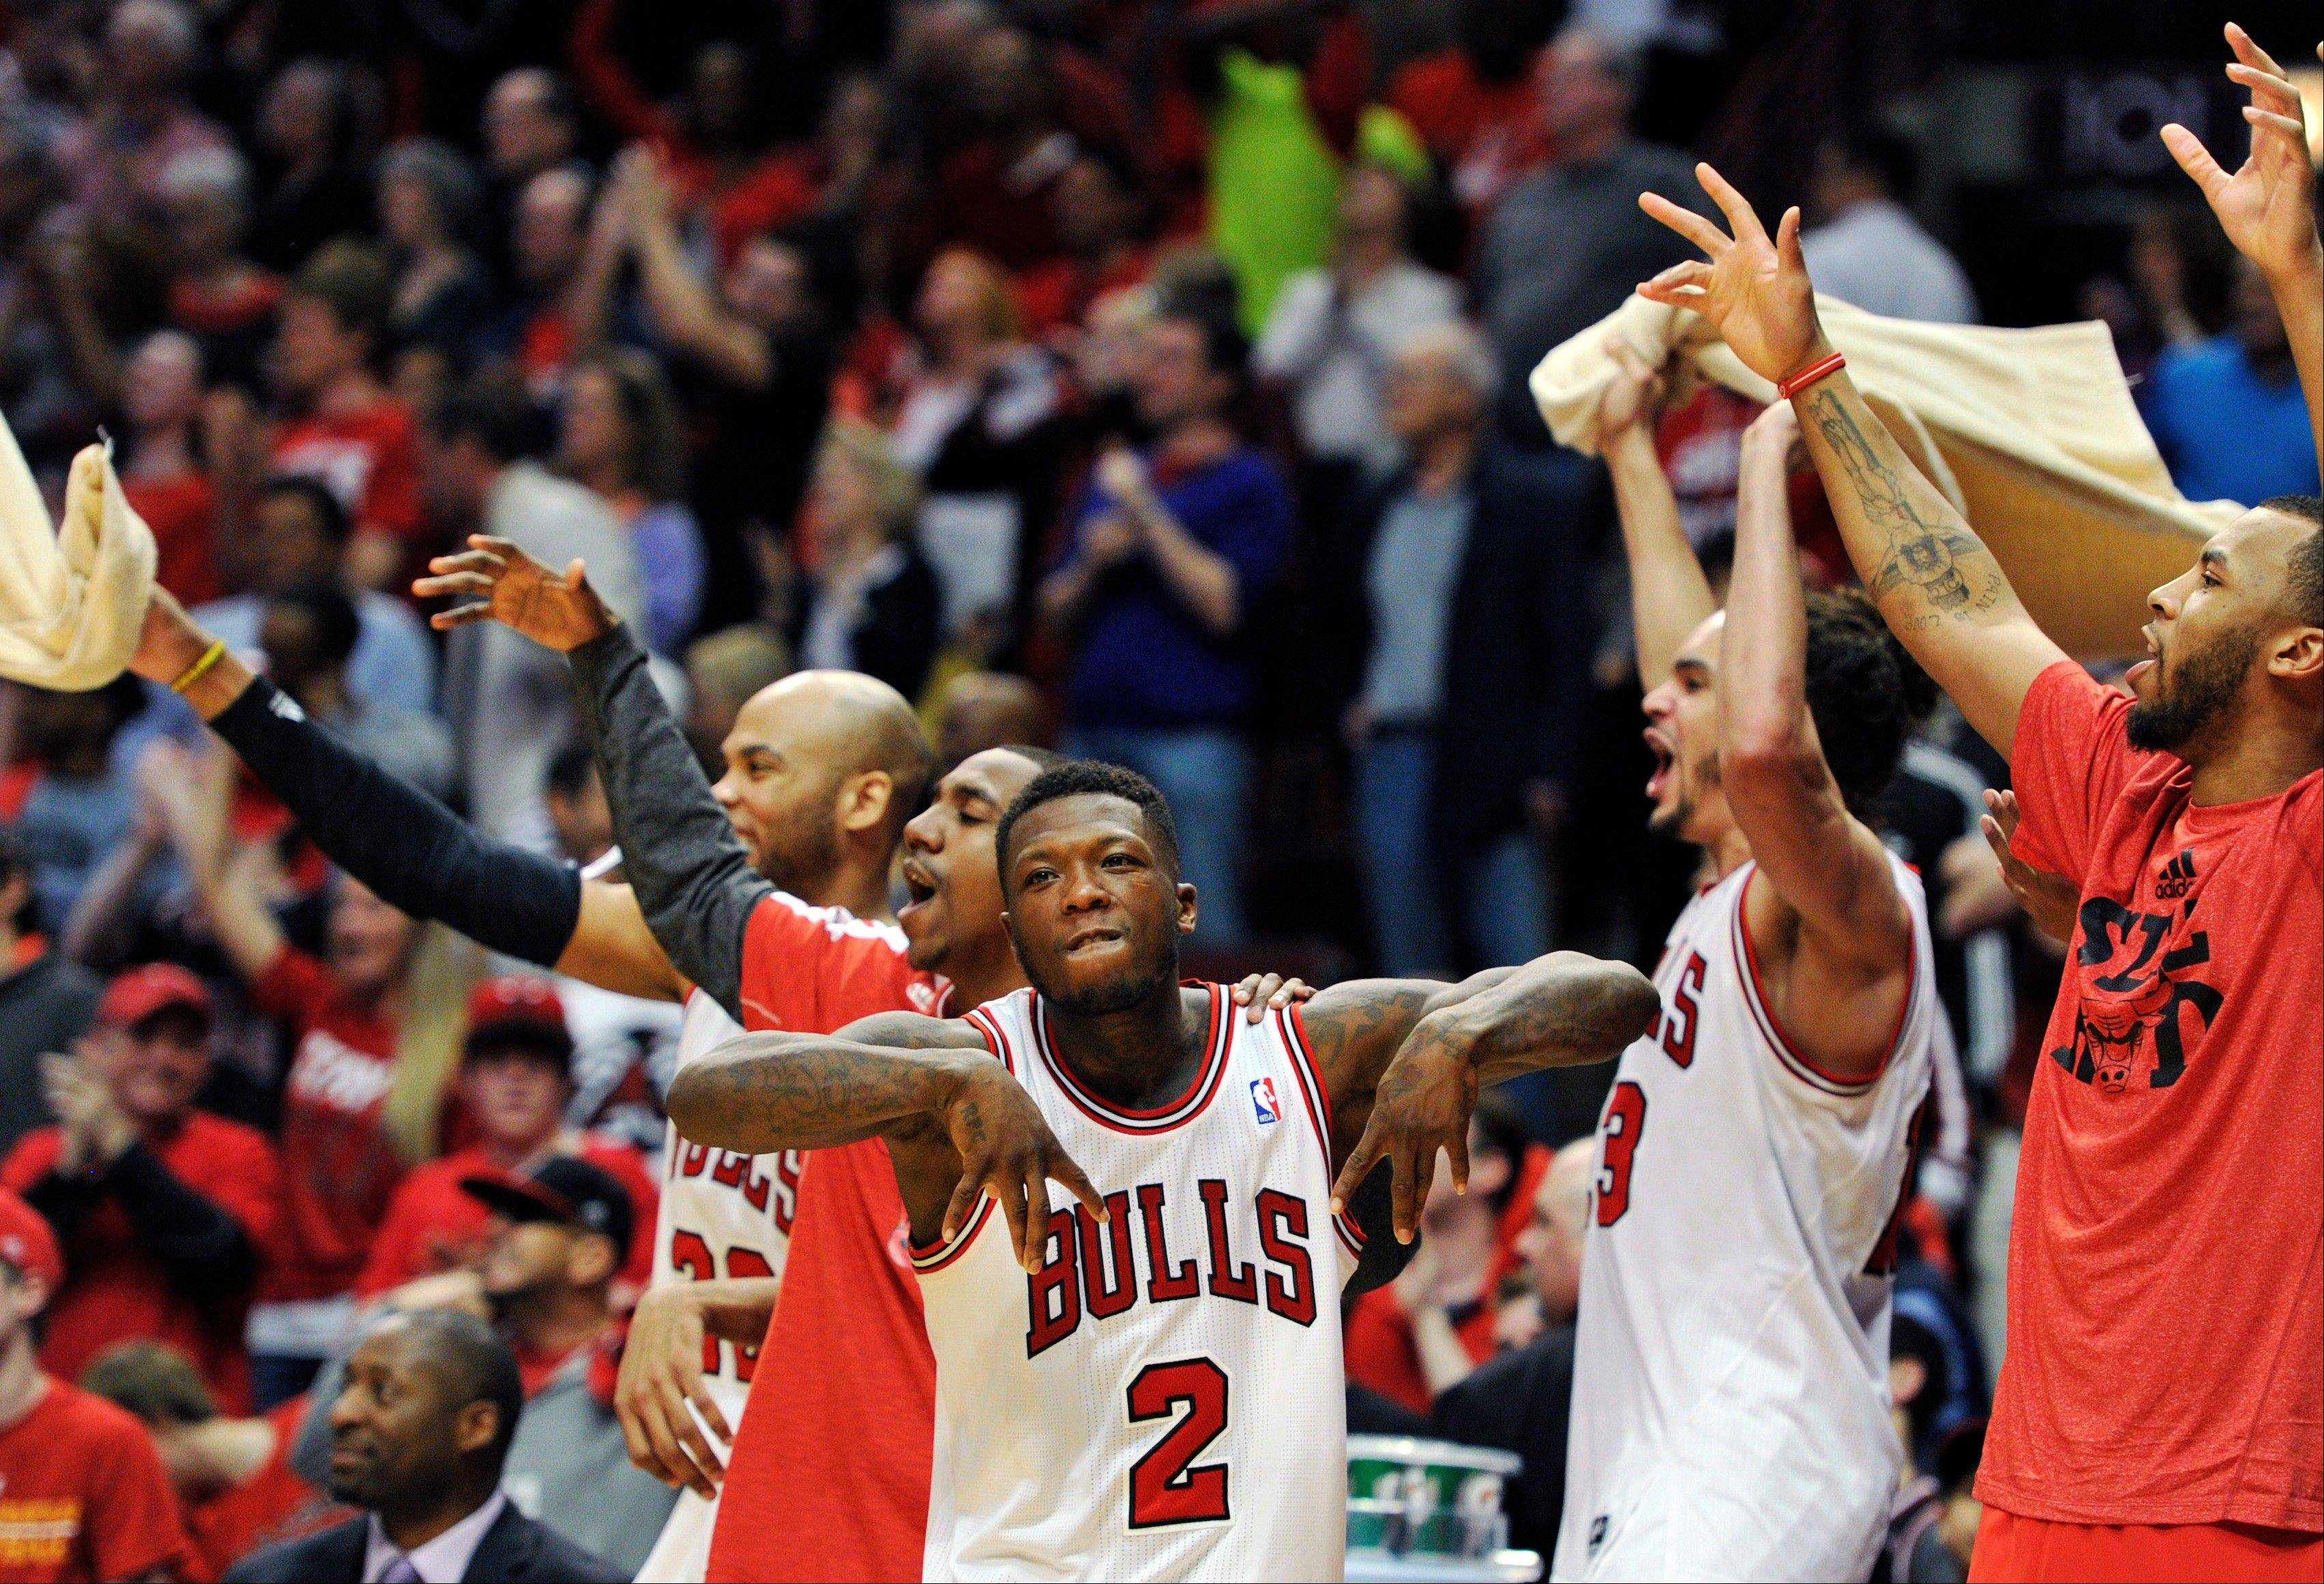 The Chicago Bulls bench including Nate Robinson (2) and Joakim Noah, center right, celebrates a basket against the Brooklyn Nets during the third overtime in Game 4 of their first-round NBA basketball playoff series Saturday, April 27, 2013, in Chicago. The Bulls won 142-134 in three overtimes.